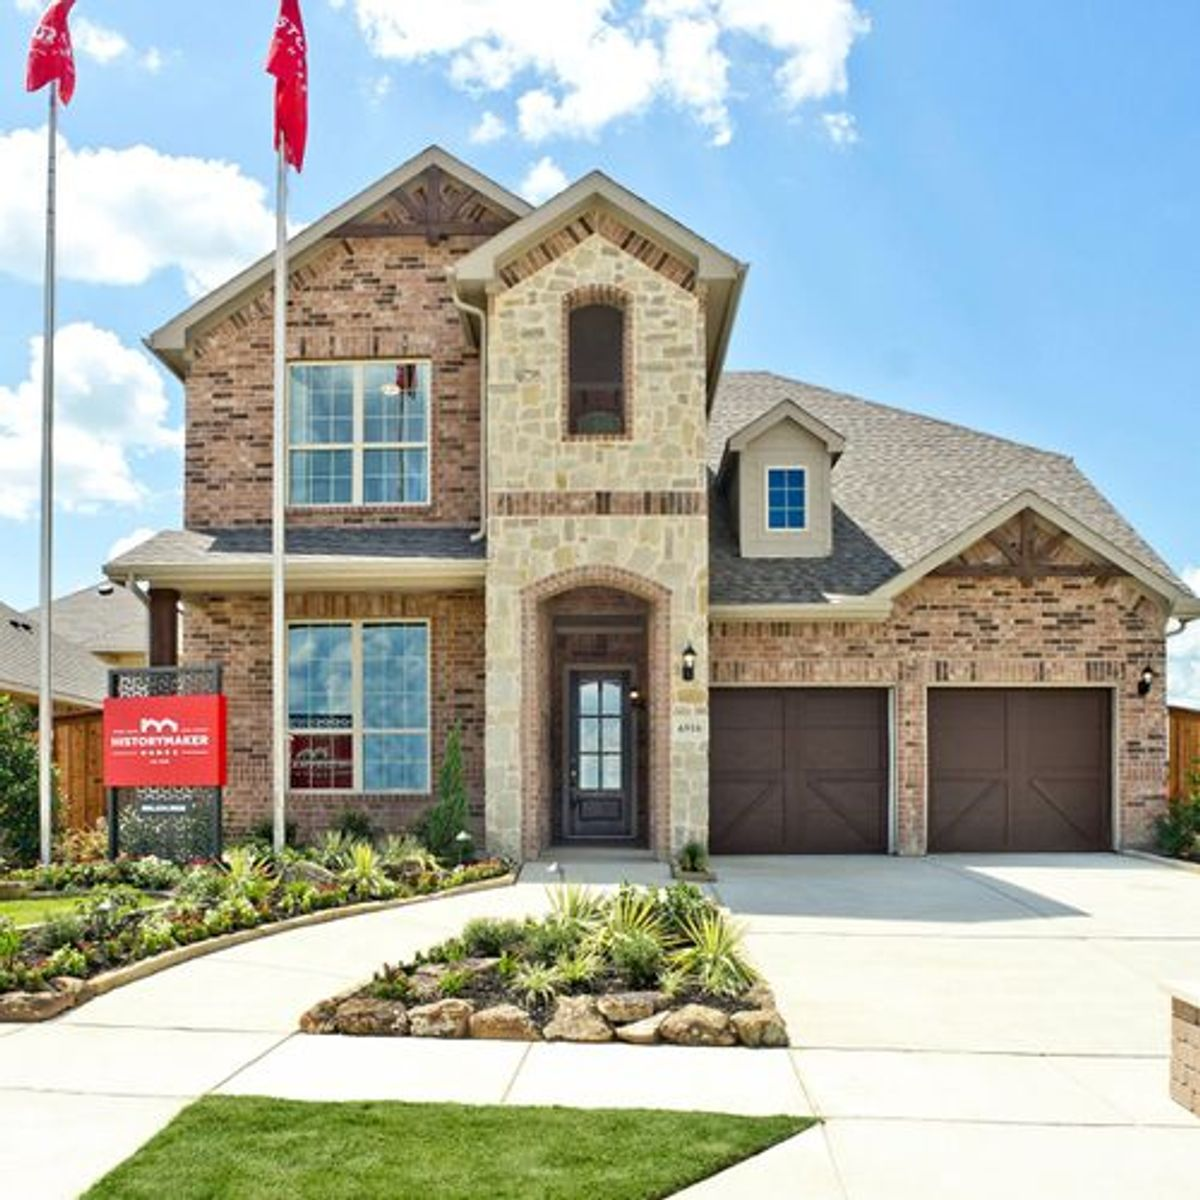 Featured Community | Chisholm Trail Ranch in Ft. Worth